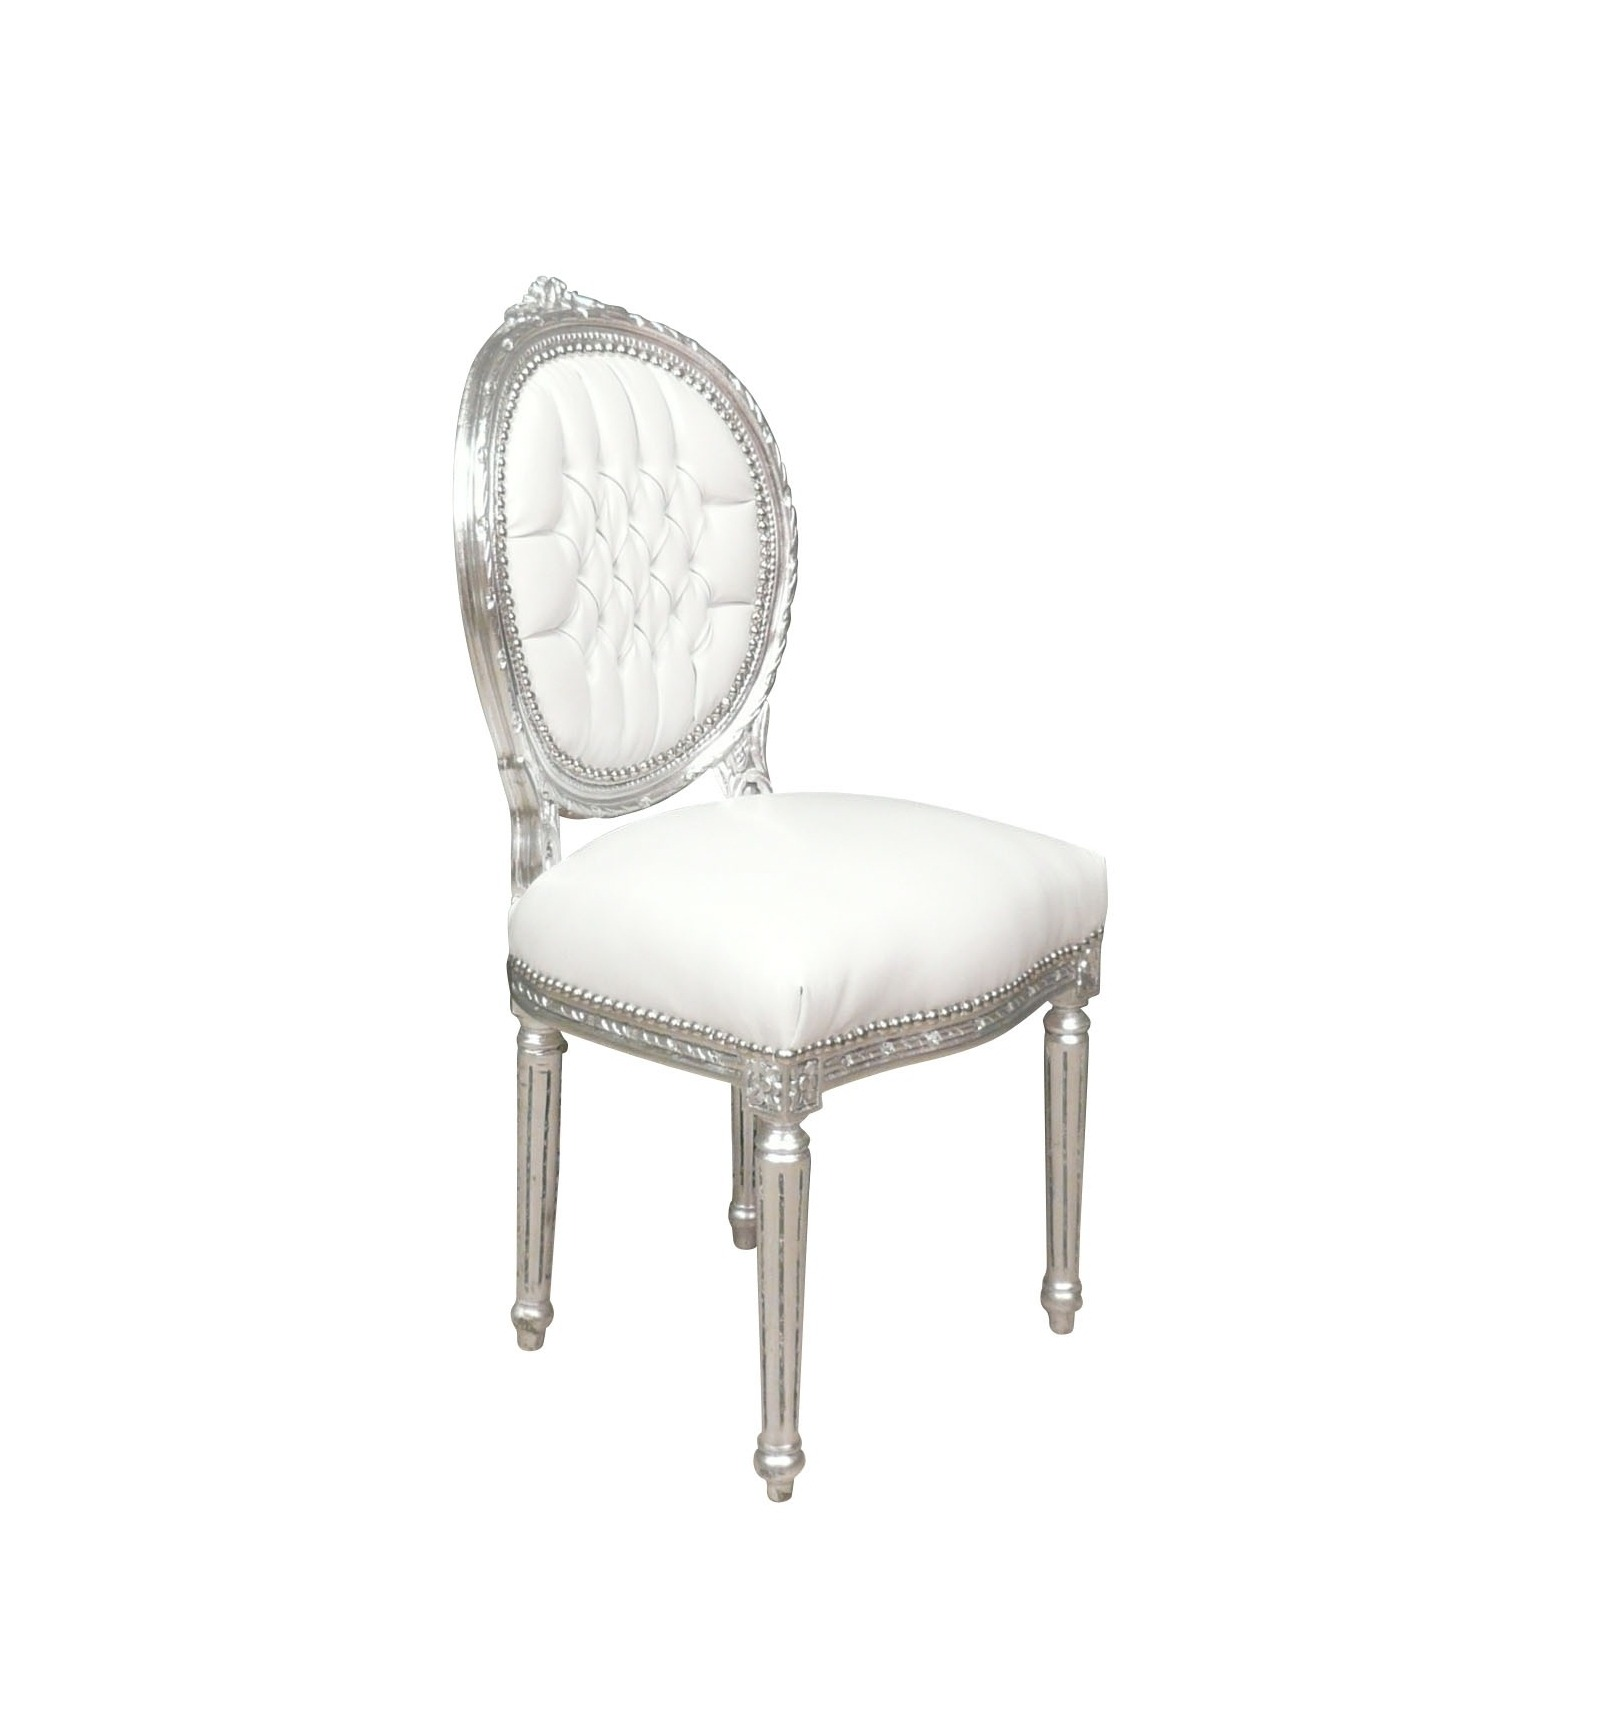 chair louis xvi white and silver cheap. Black Bedroom Furniture Sets. Home Design Ideas